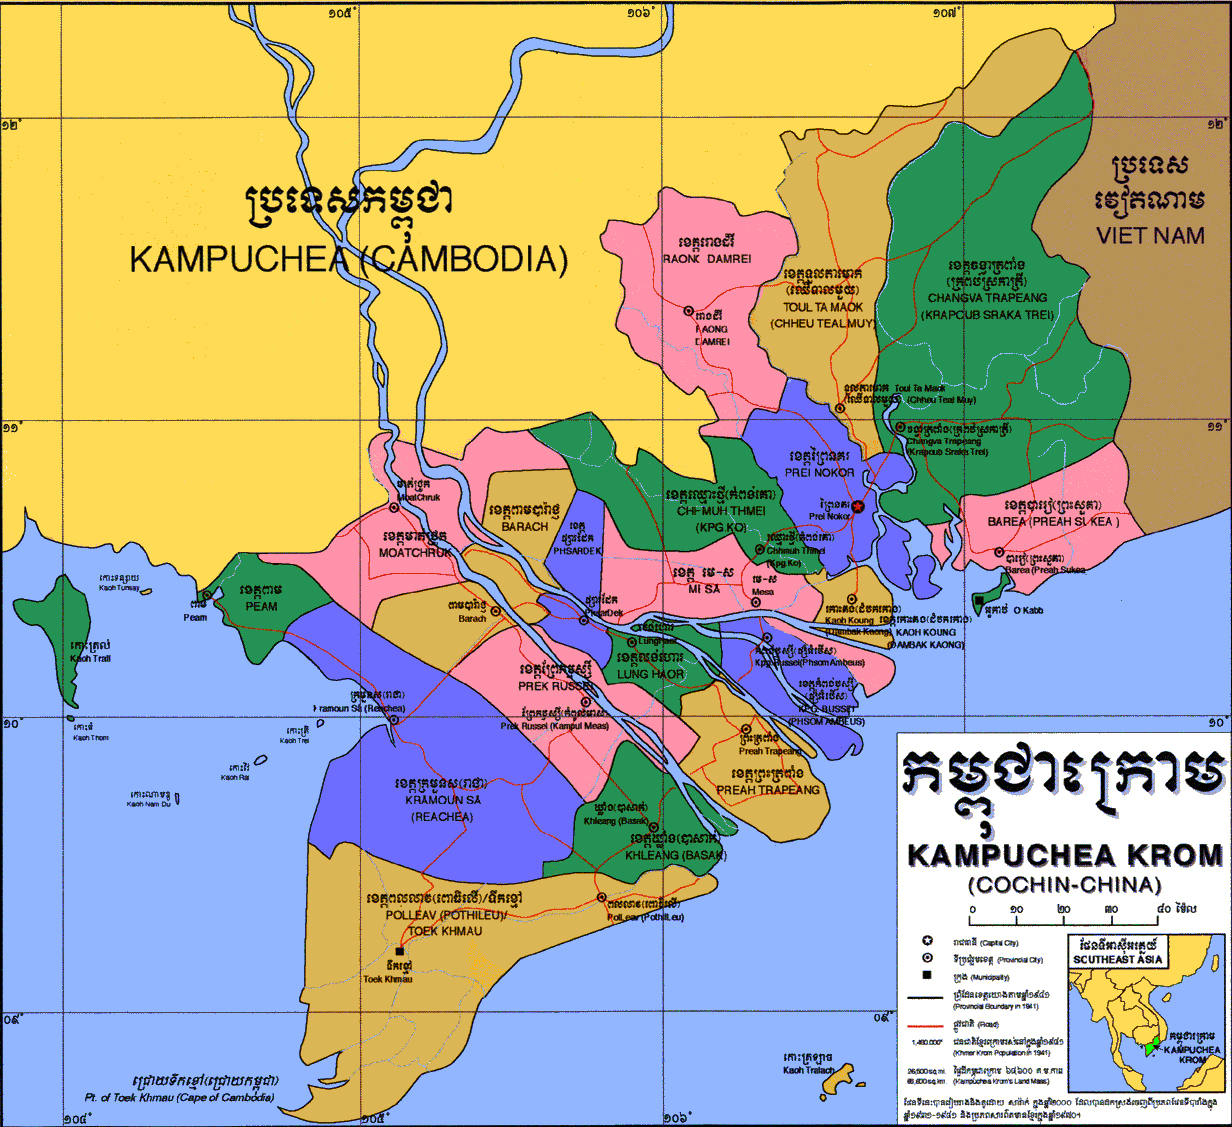 Vietnam: Letter to Member states of ECOSOC in support of the Khmers Kampuchea-Krom Federation